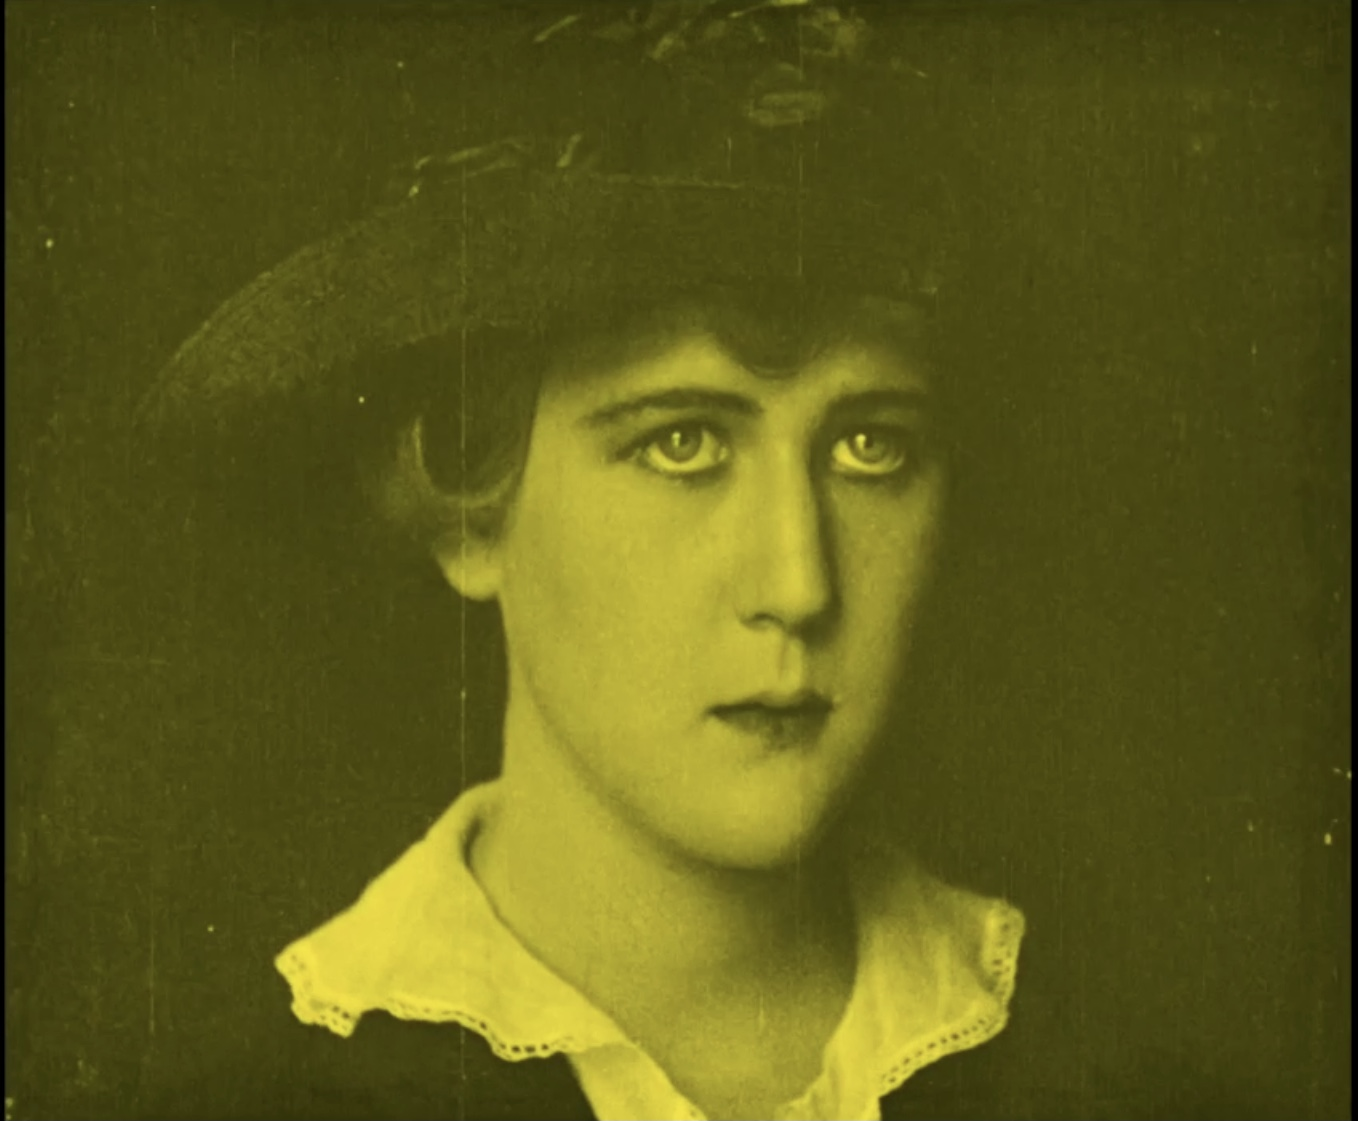 Mary MacLaren in Shoes (1916)